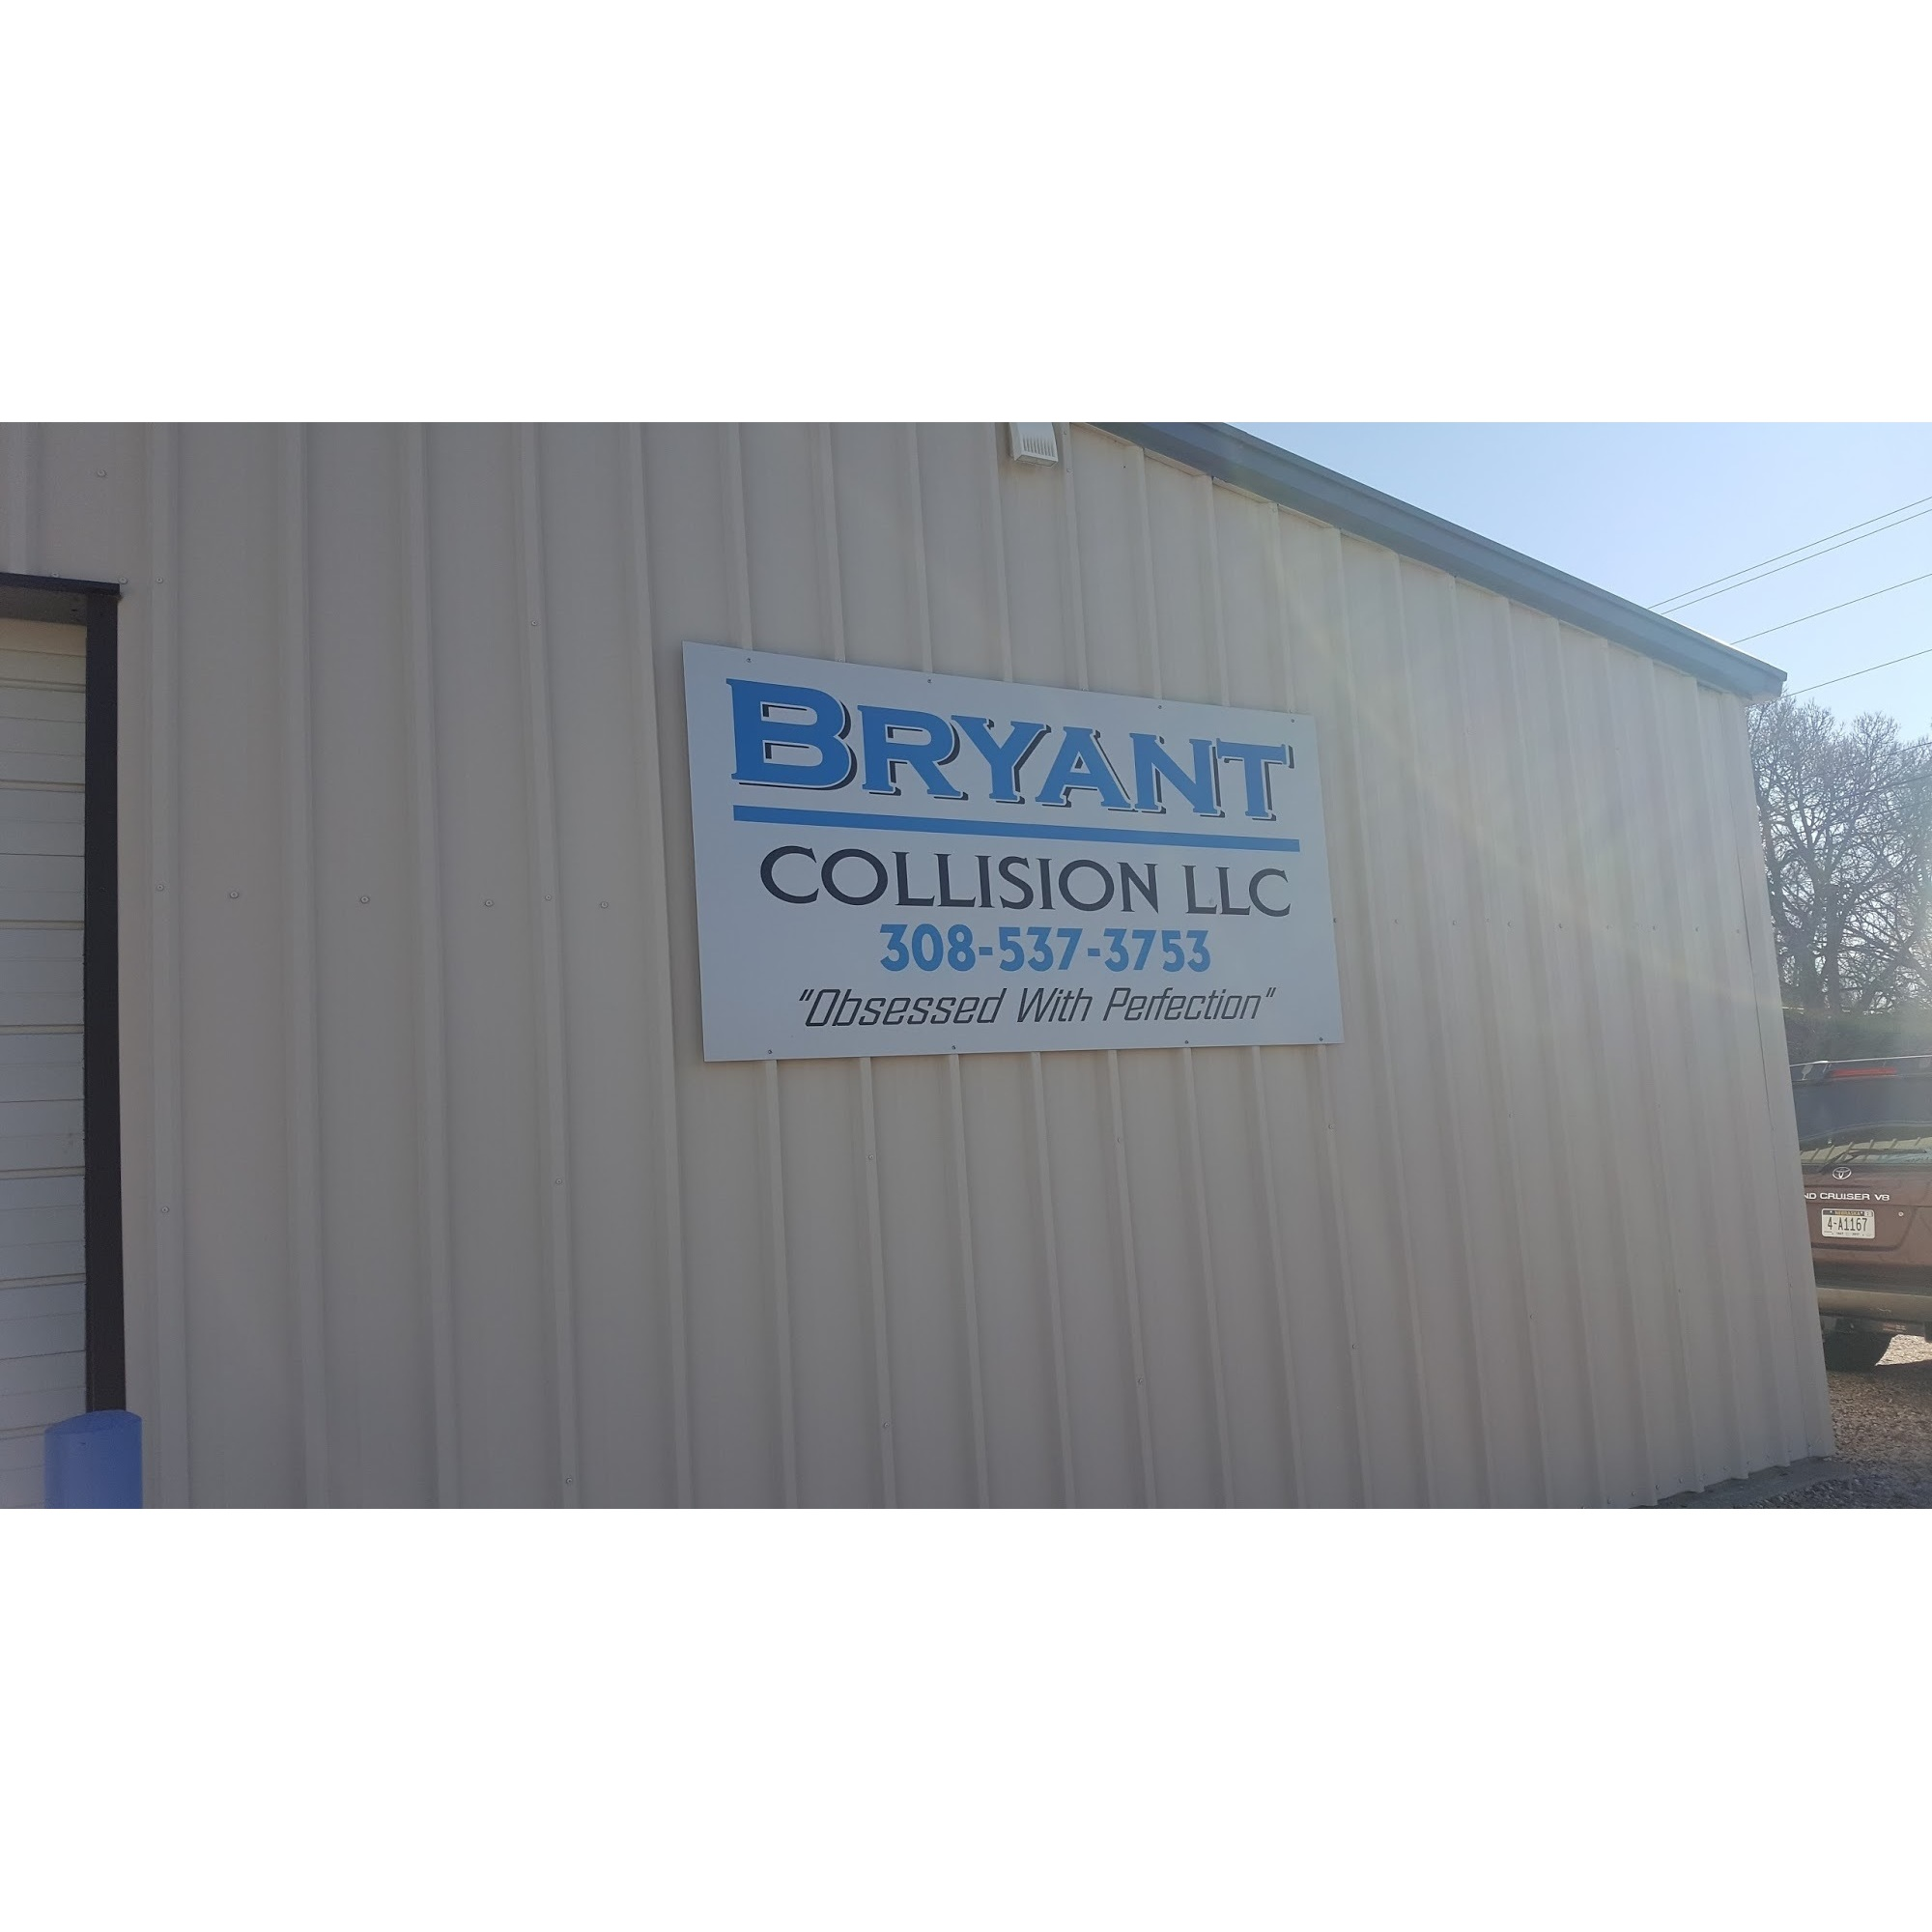 Rv Collision Repair San Jose >> Business Directory for Gothenburg, NE - ChamberofCommerce.com